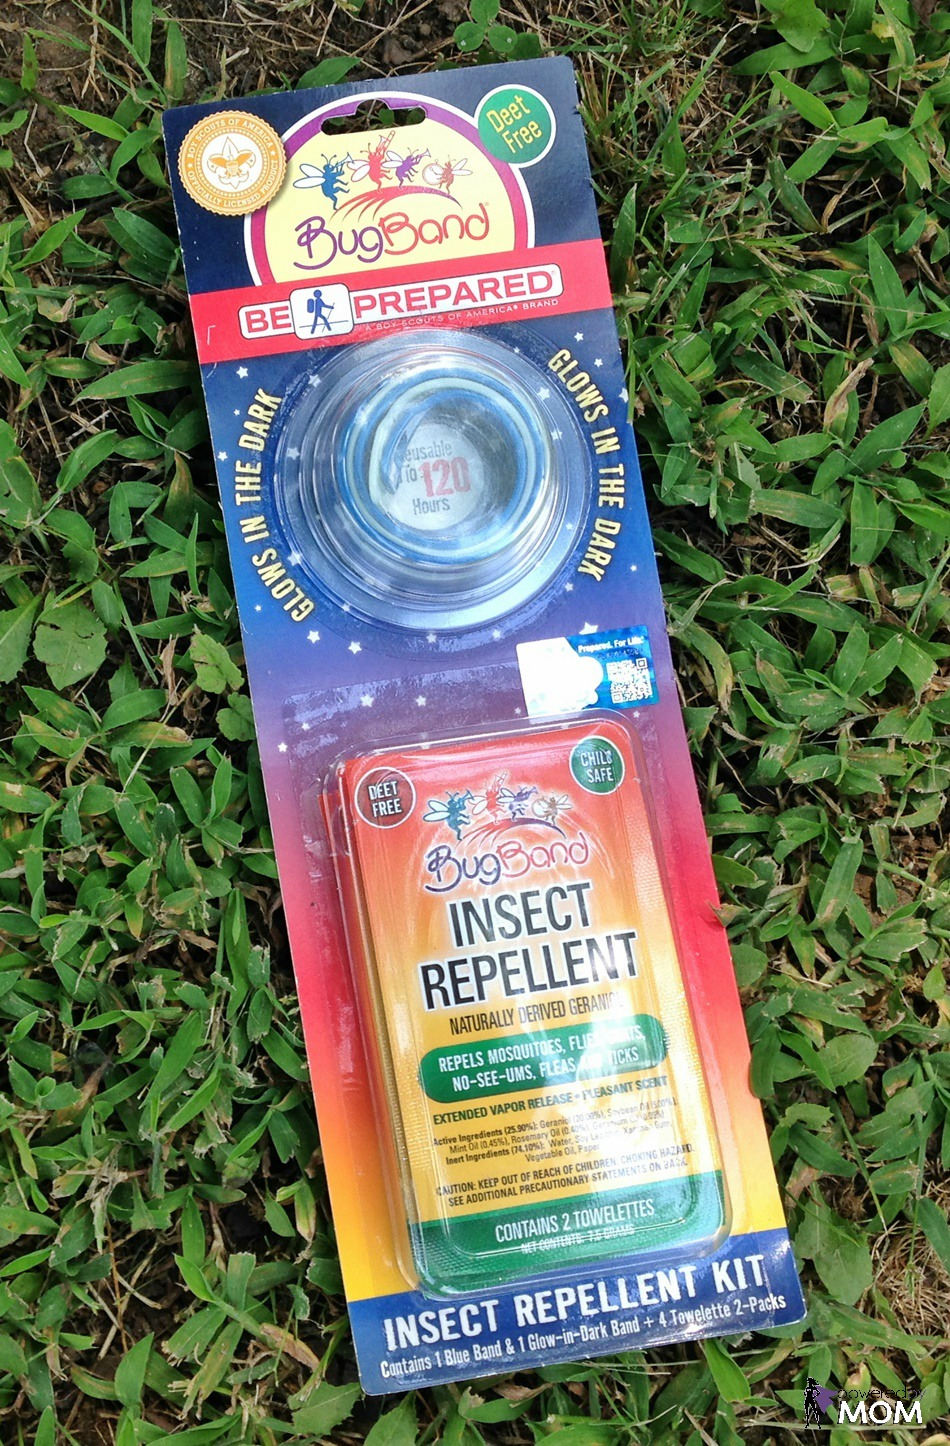 BugBand - Boy Scouts of America Be Prepared Repellent Combo Kit